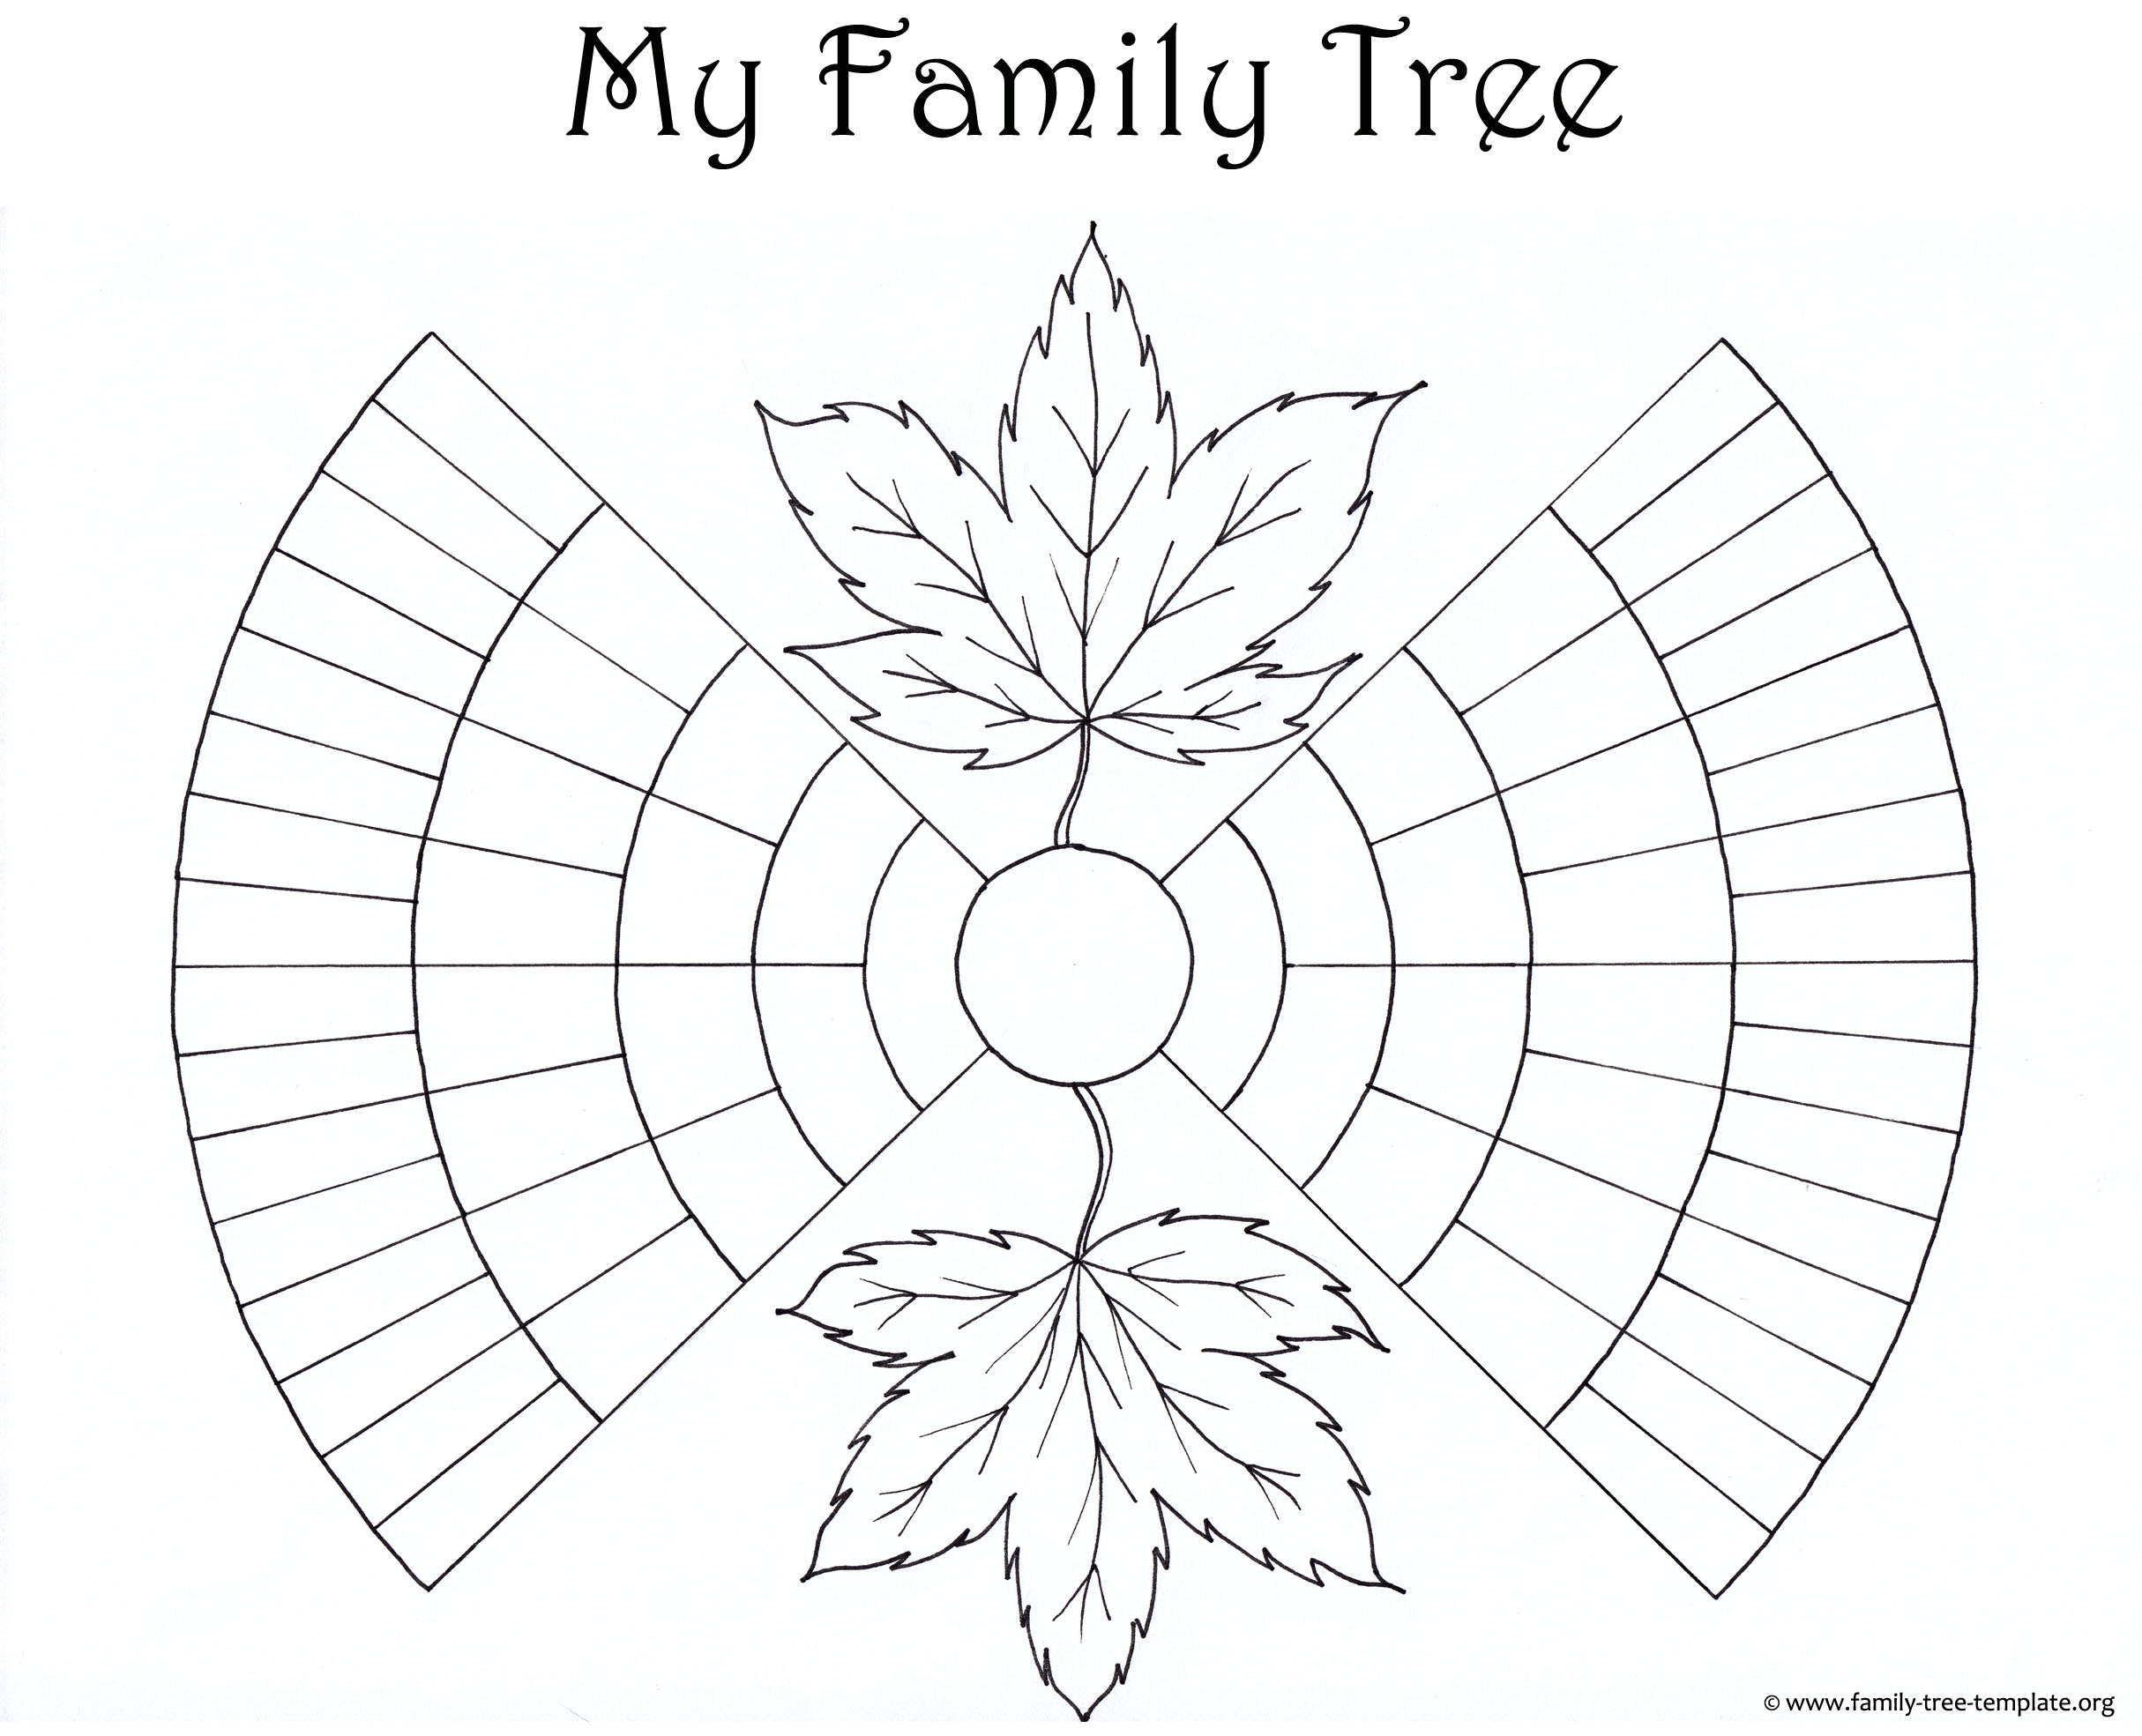 Family Tree Template To Print from family-tree-template.org